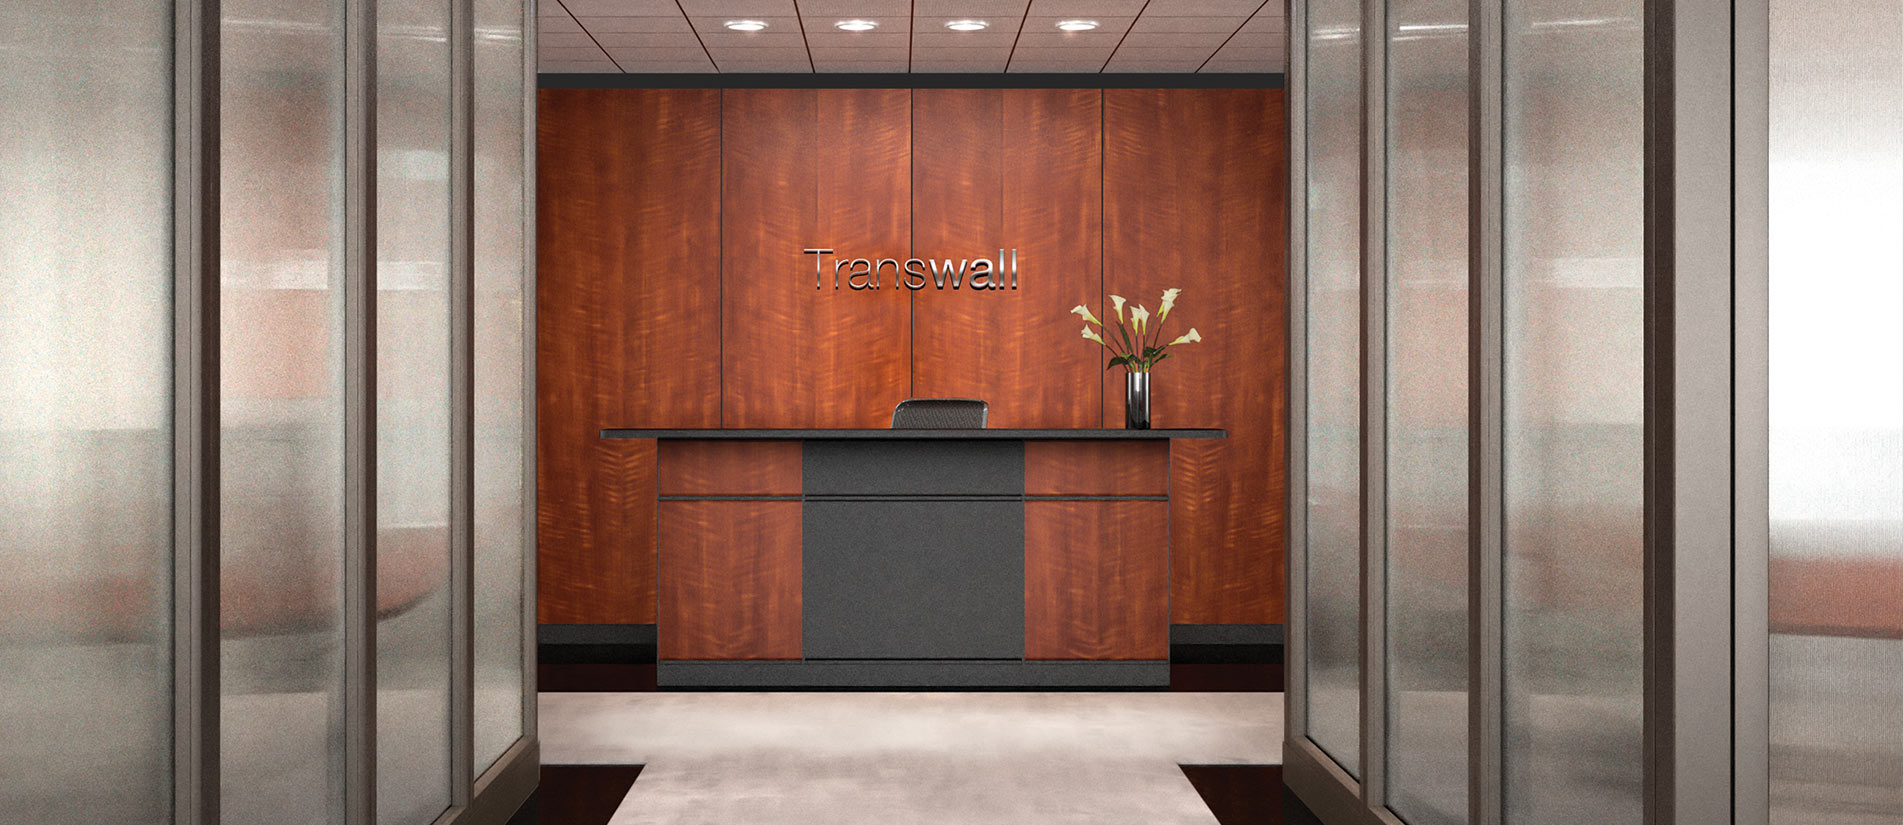 zwall-movable-office-walls-transwall-gallery-3